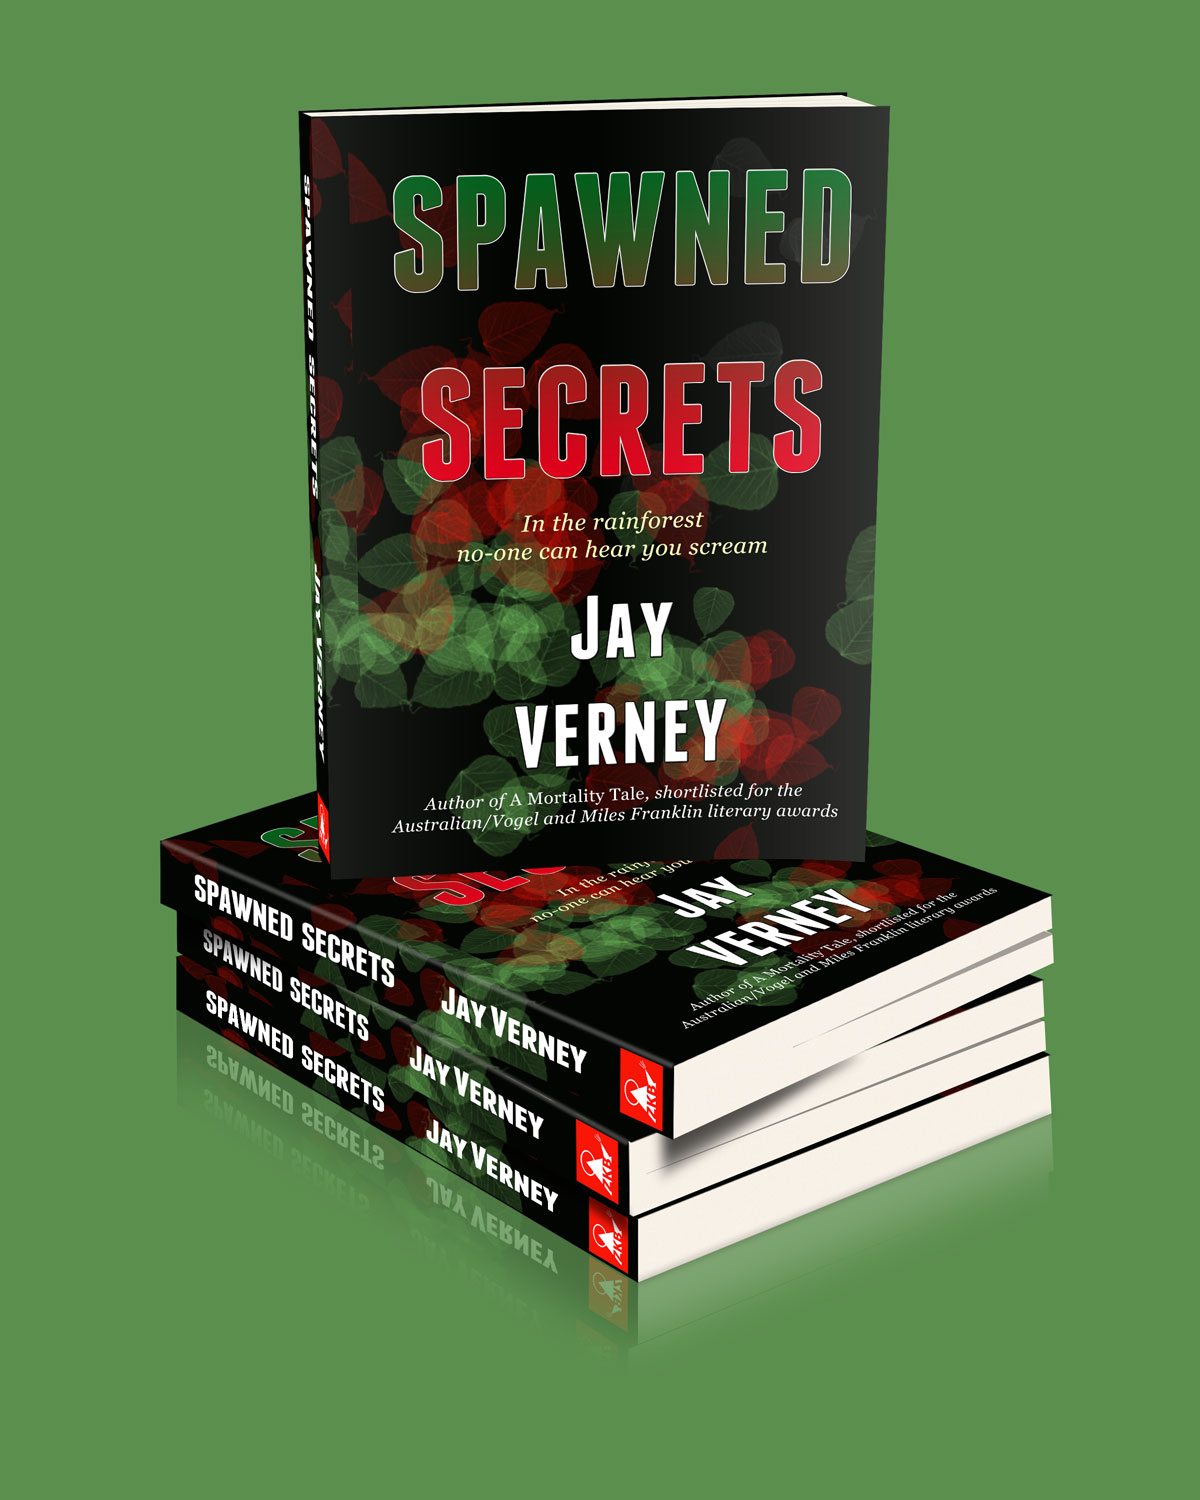 Spawned Secrets - My 3rd novel